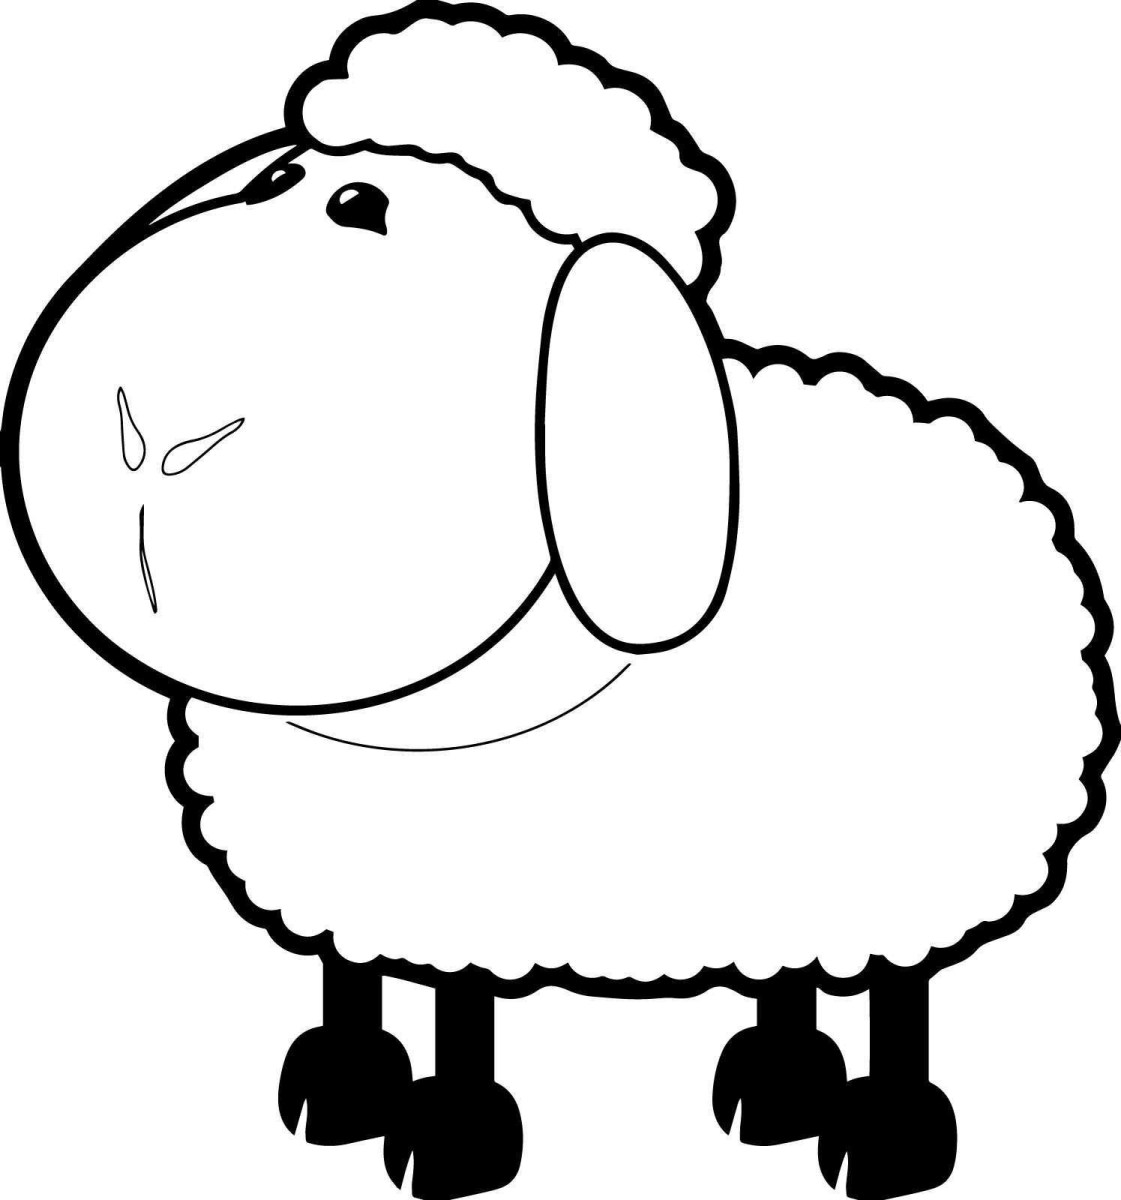 Sheep Coloring Page Goat Coloring Pages Dessin De Pages Colorier Sheep Coloring Page